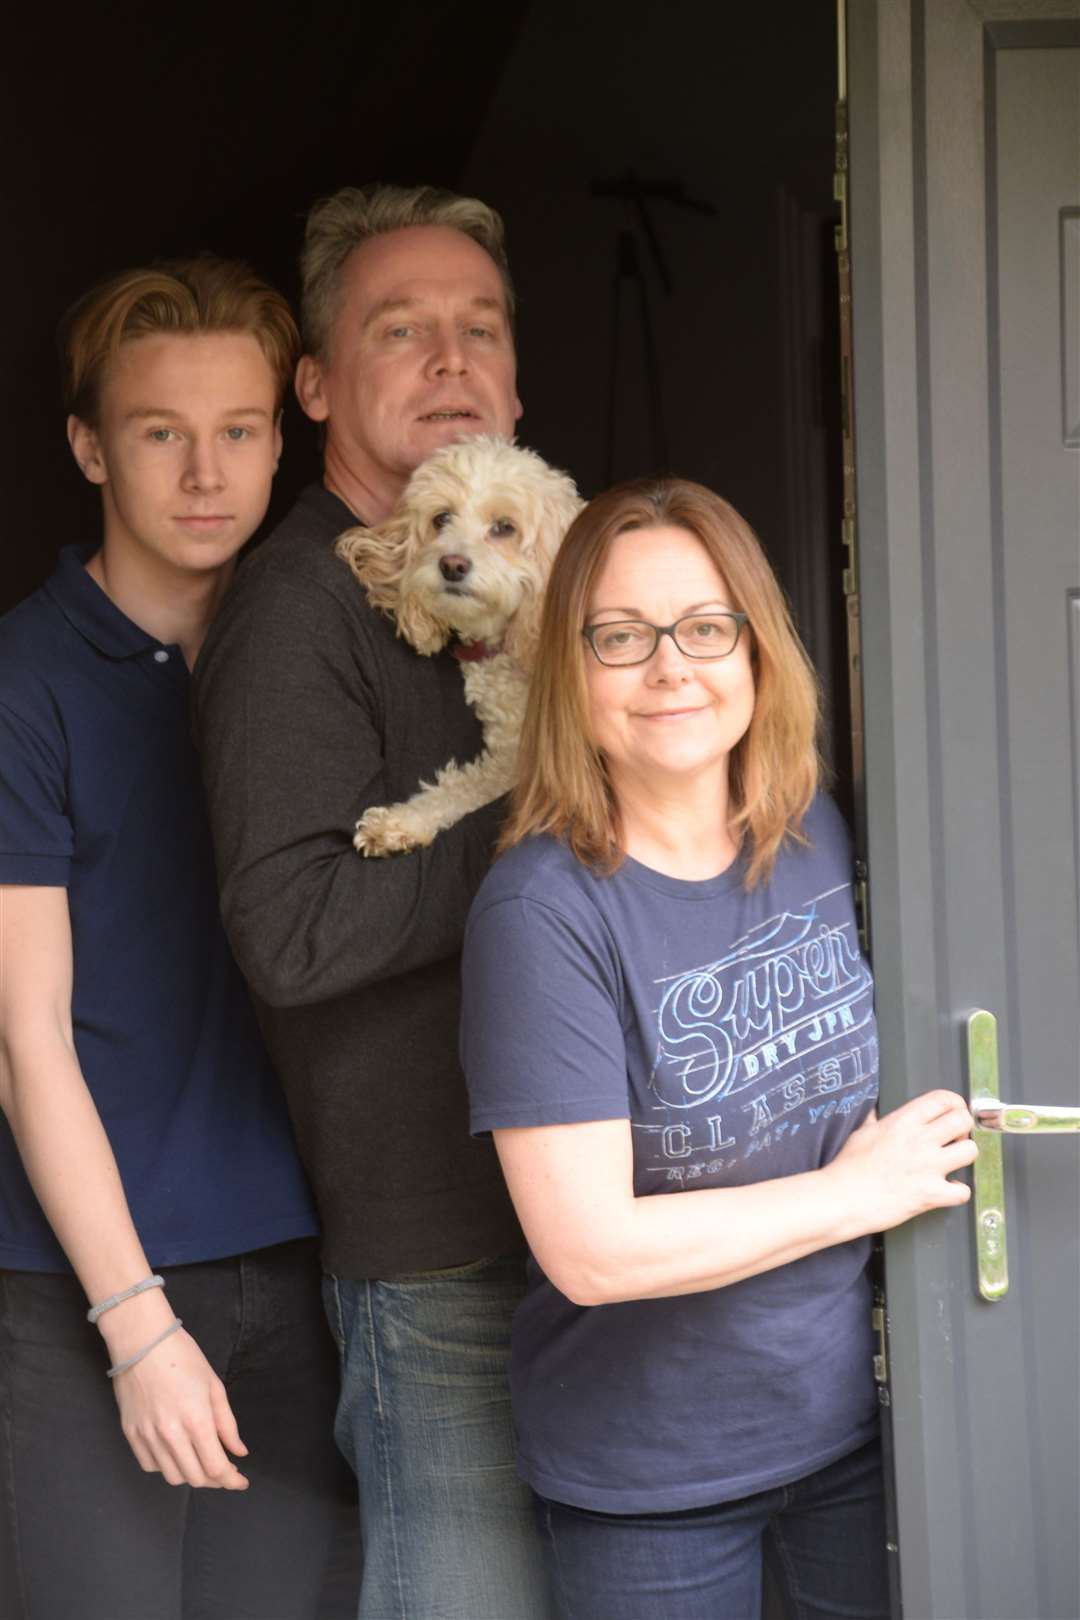 The Wilson family coping with lockdown – Cate with husband Scott, son Jacob and Lily Pickle the dog. Picture: Vikki Lince (33947596)